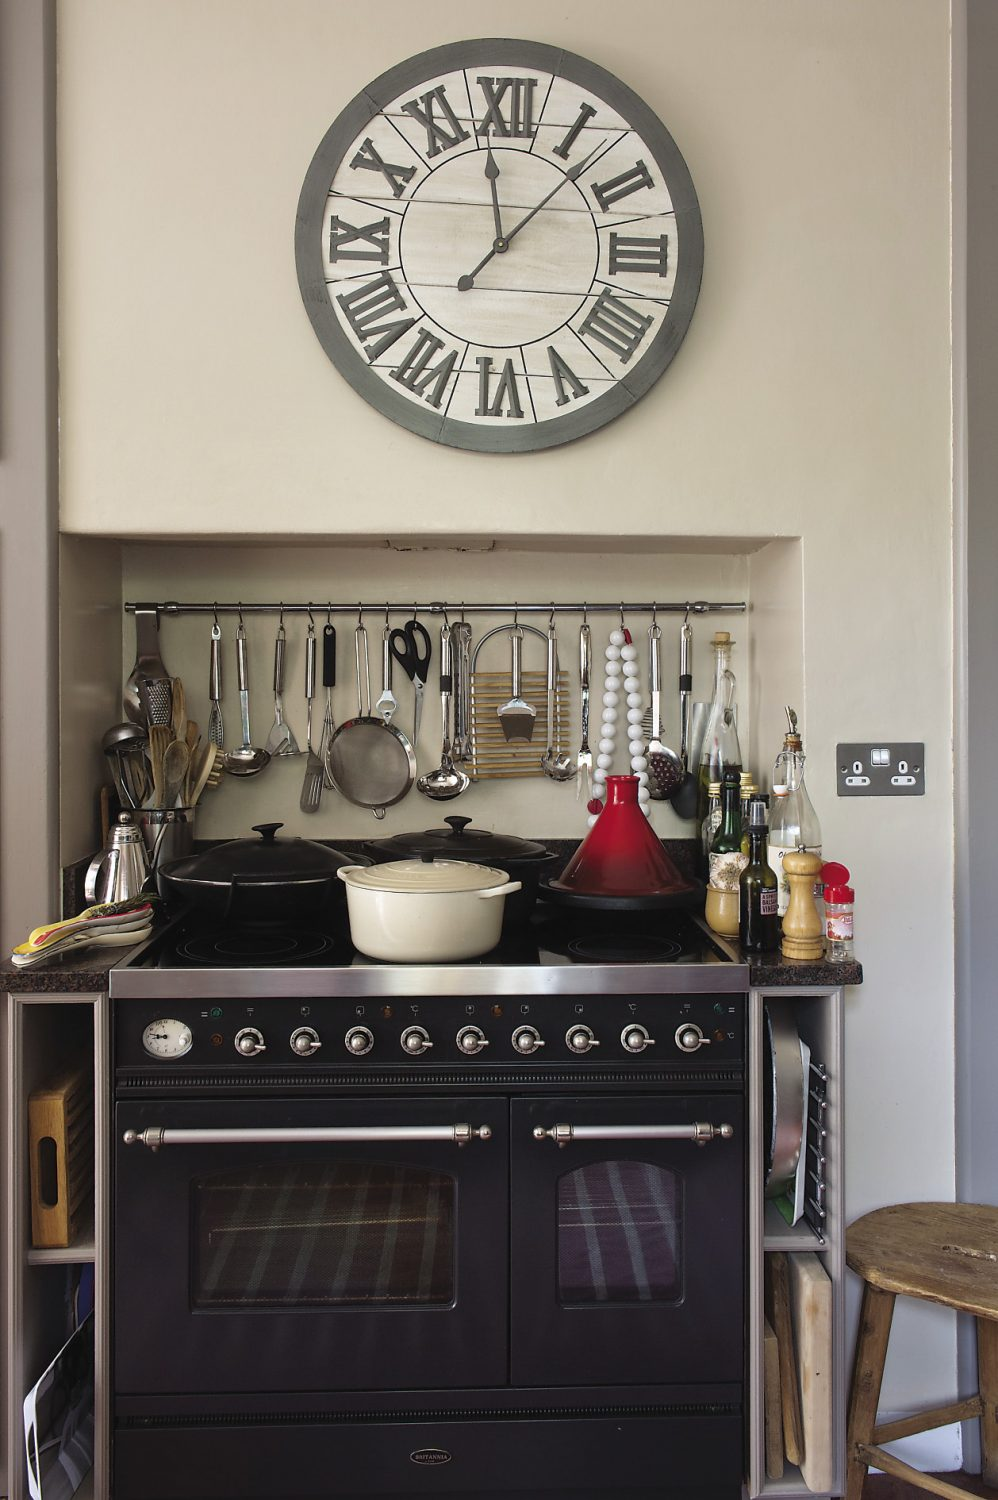 A large wooden clock with bold Roman numerals that was bought from Maison in Tunbridge Wells hangs above the wide black cooking range